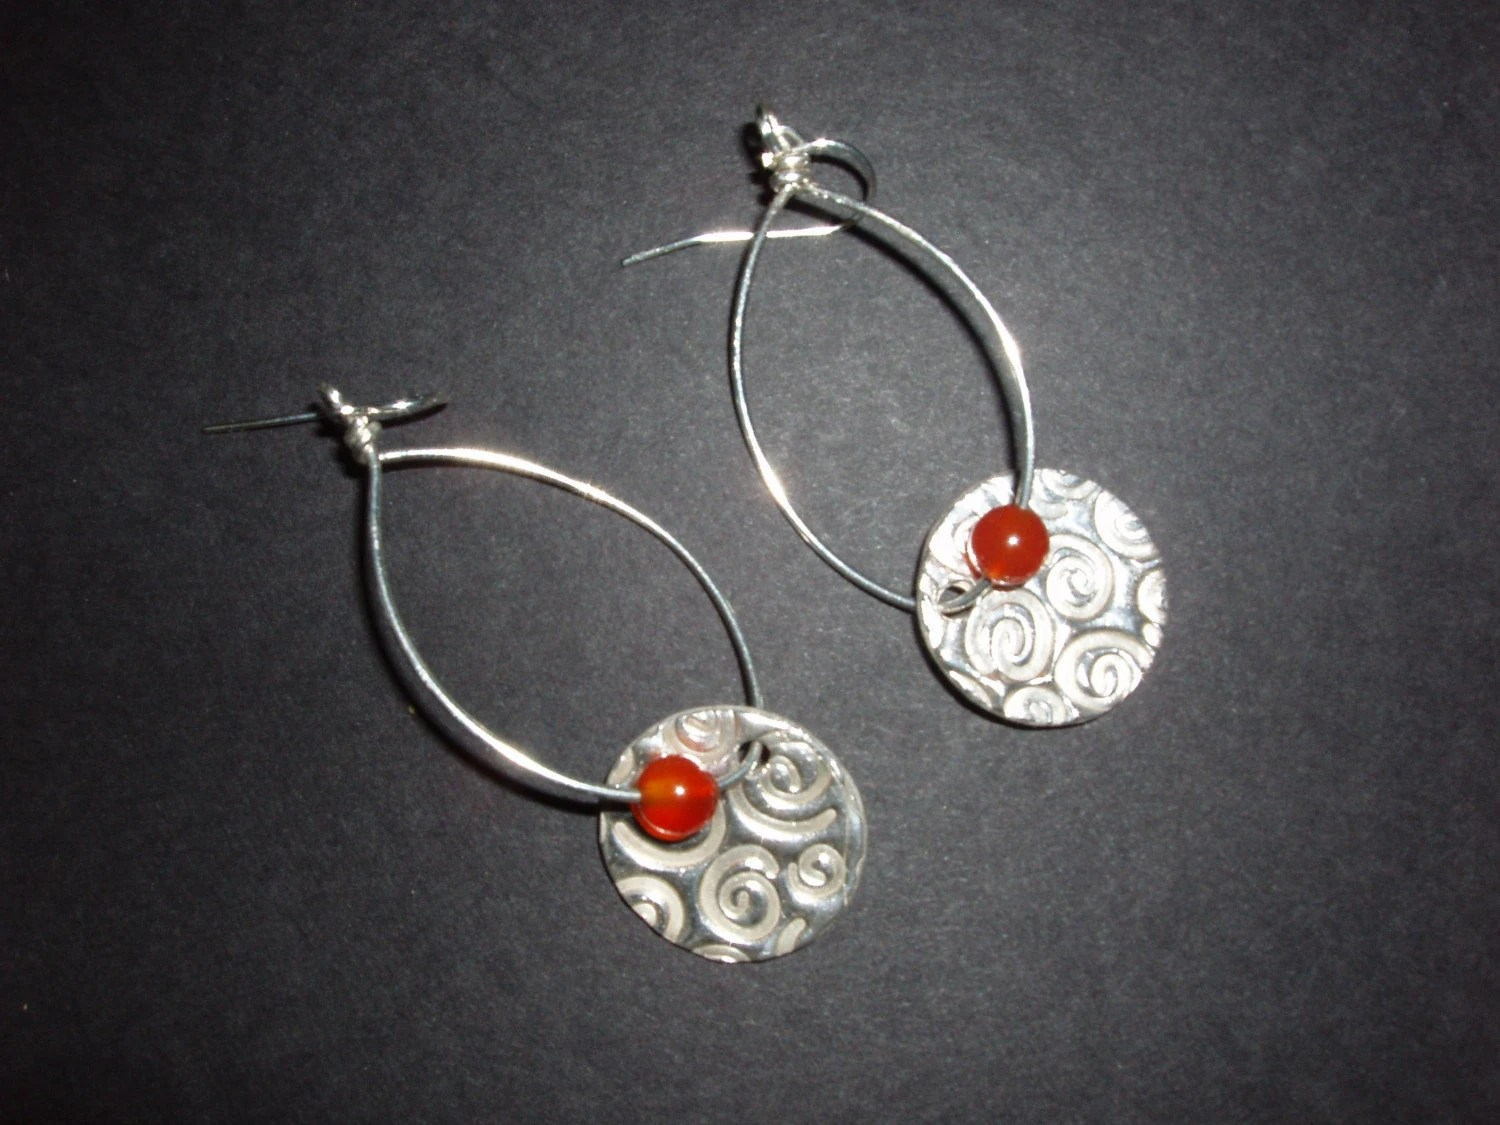 These sparkly carnelian earrings are perfect accessories for an Independence Day picnic.  See more at http://www.etsy.com/shop.php?user_id=7089619